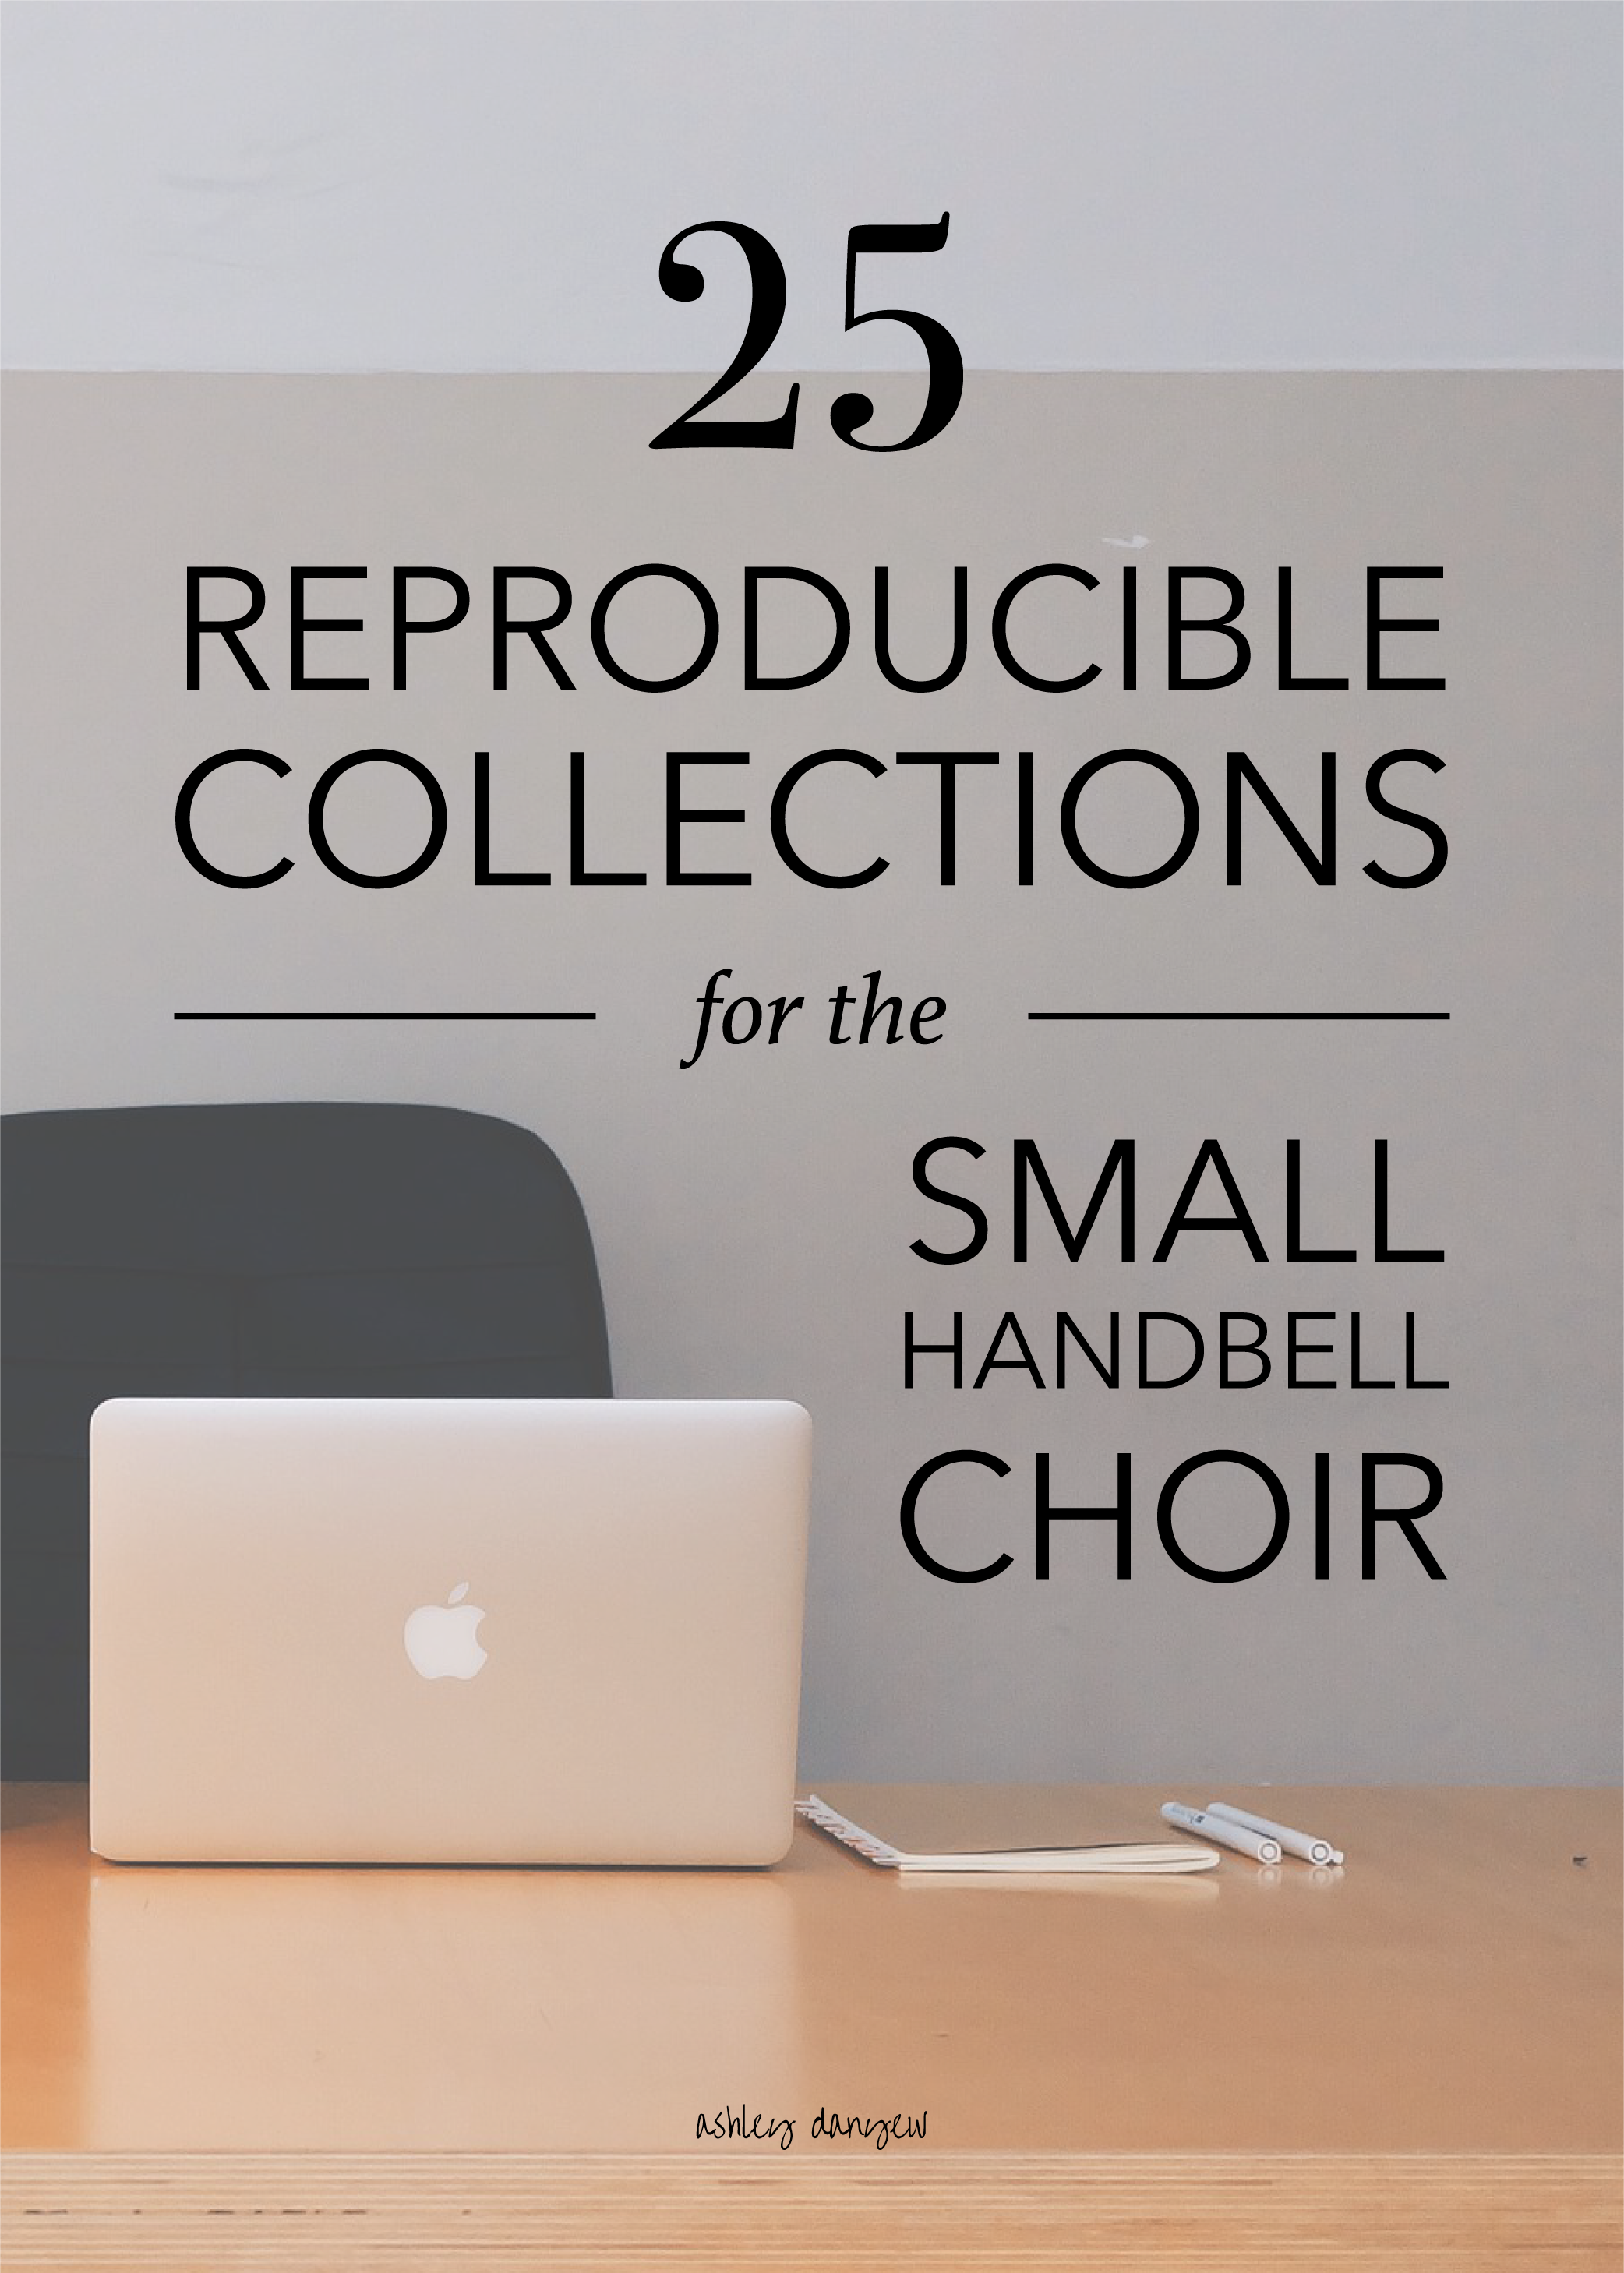 Copy of 25 Reproducible Collections for the Small Handbell Choir